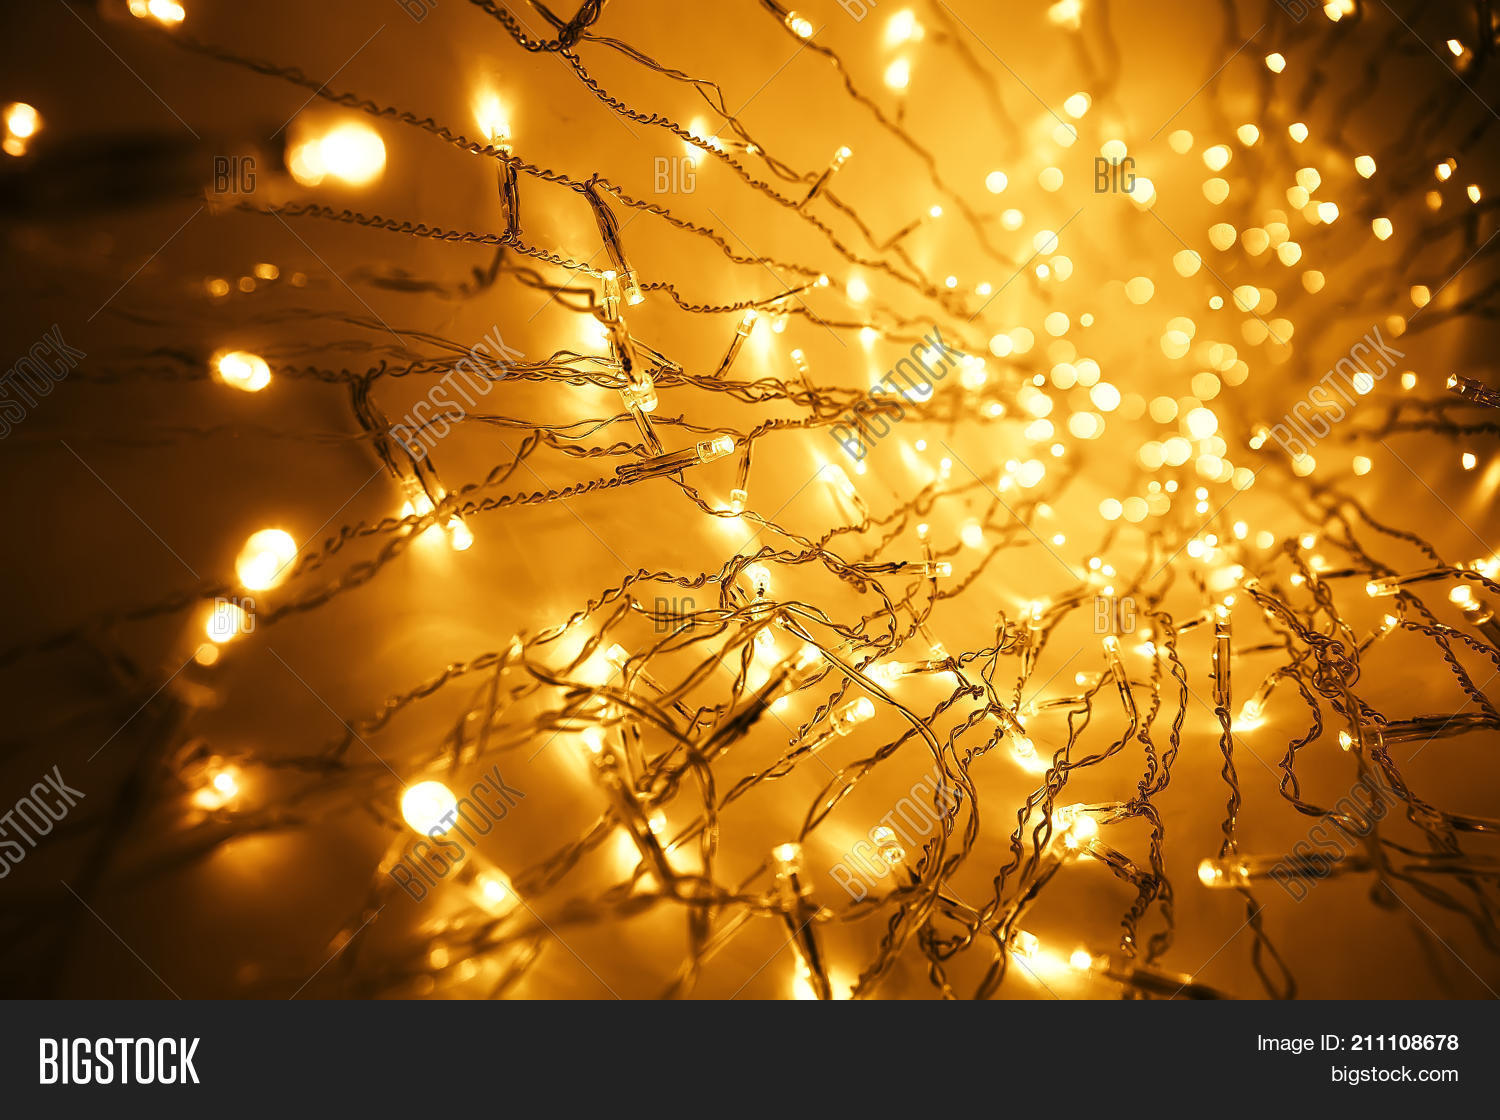 Abstract background soft blurred christmas lights garland stock